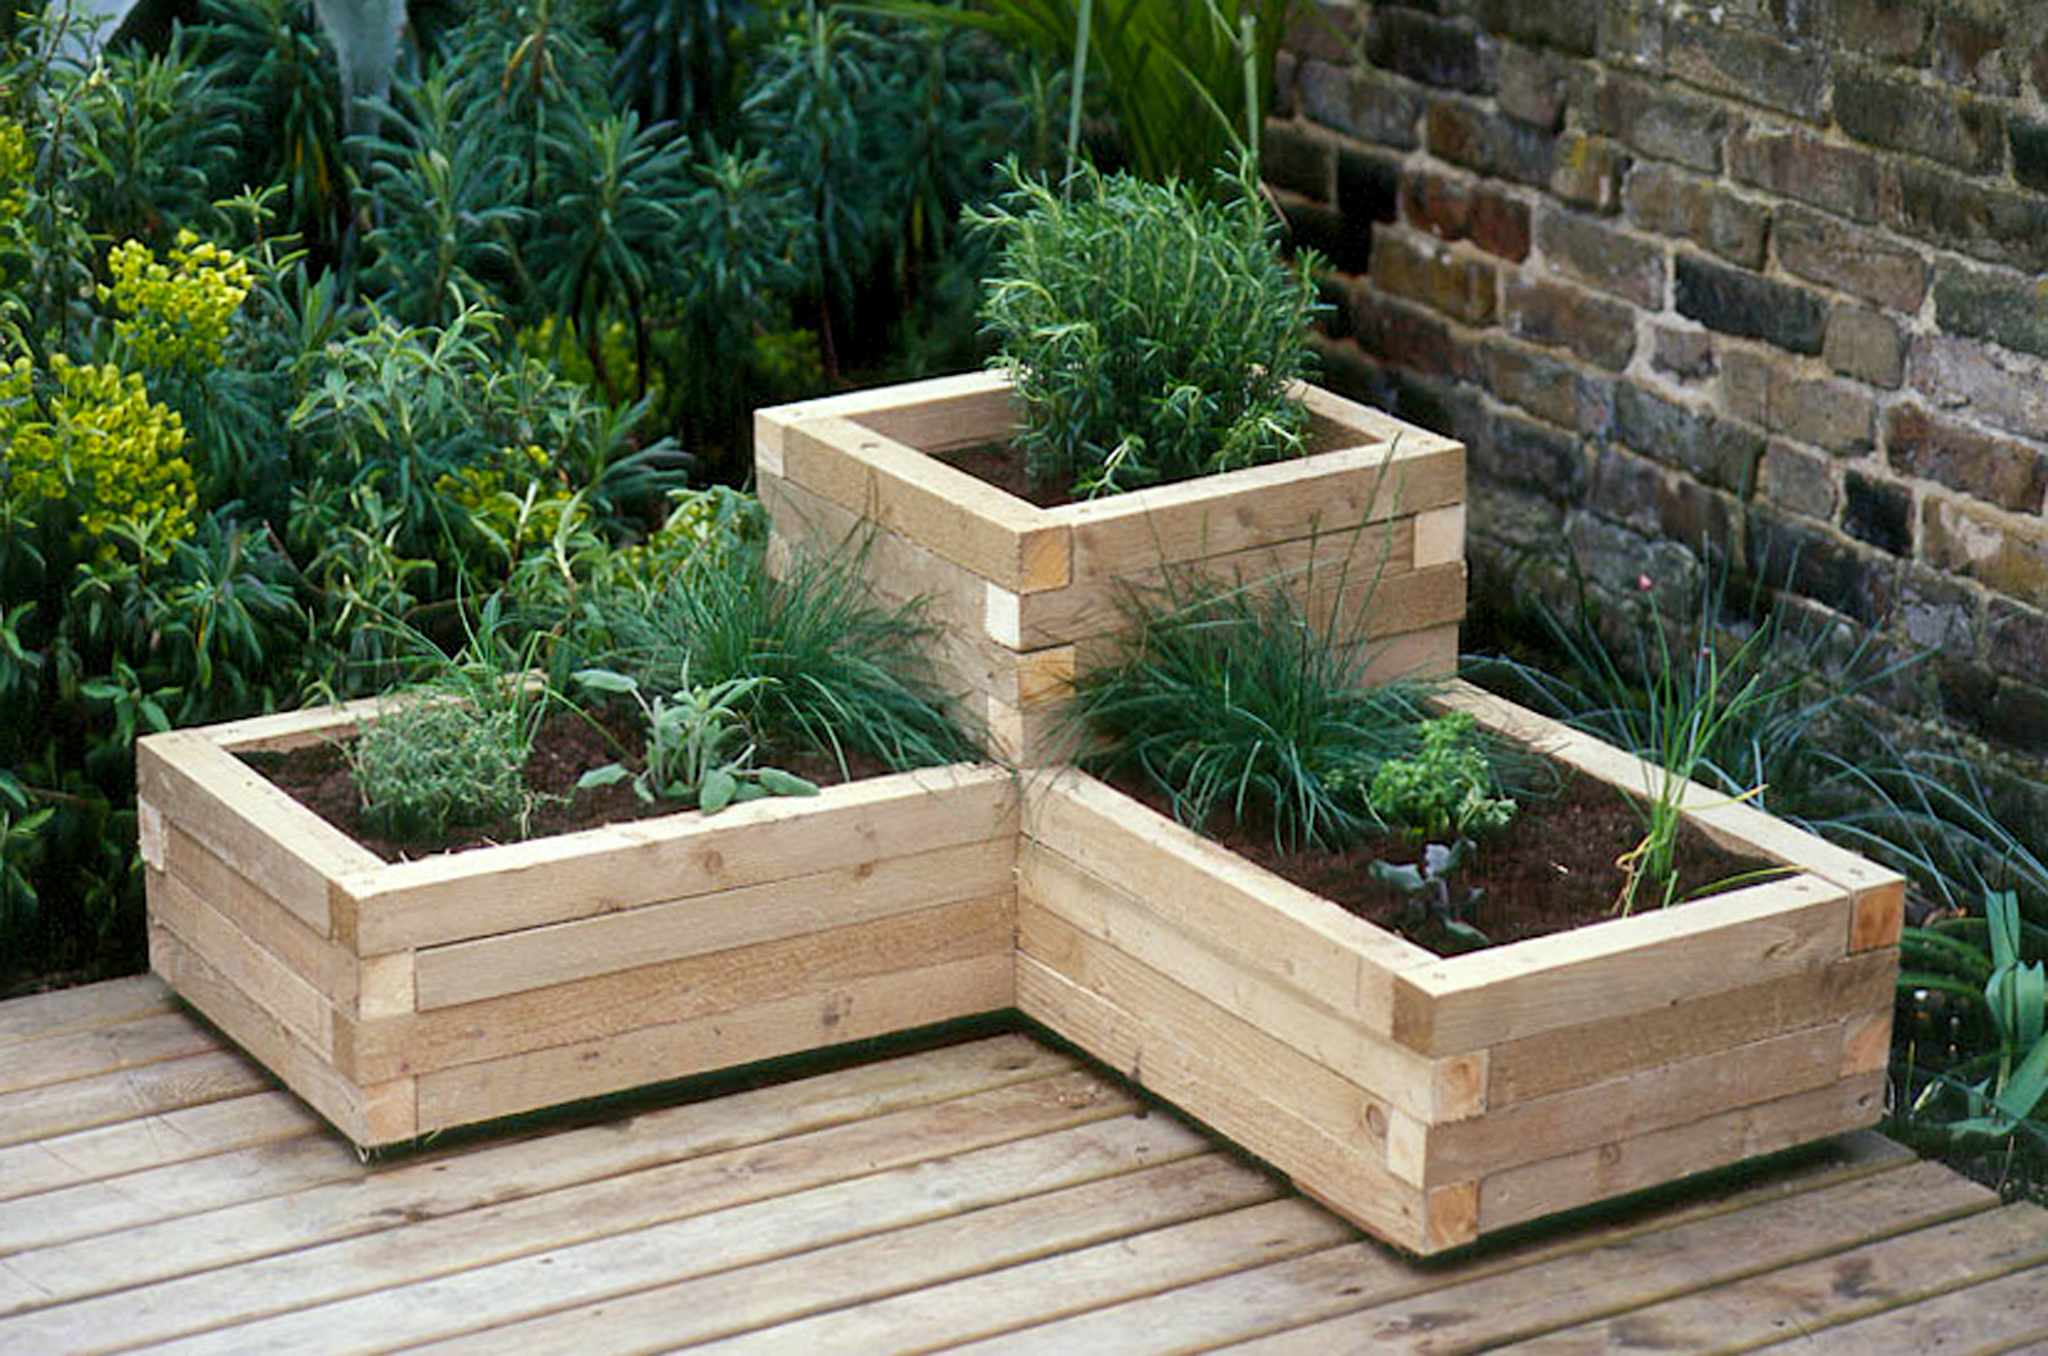 Tiered wooden planter